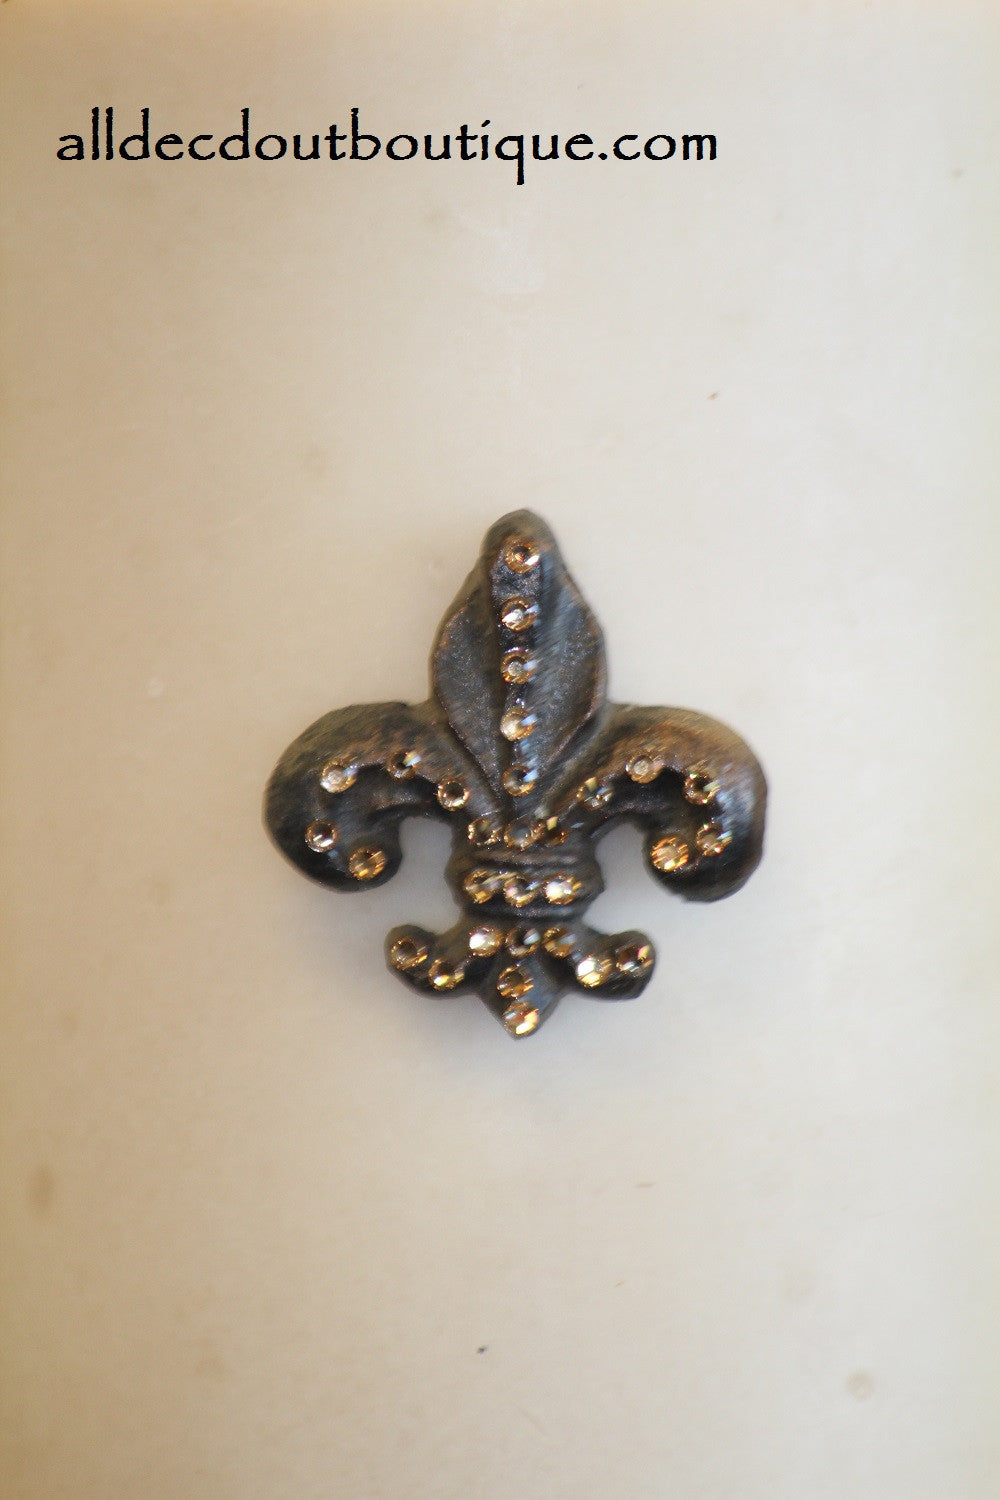 DECORATIVE CANDLE PIN EMBELLISHED | Topaz Crystals Small Fleur De Lis